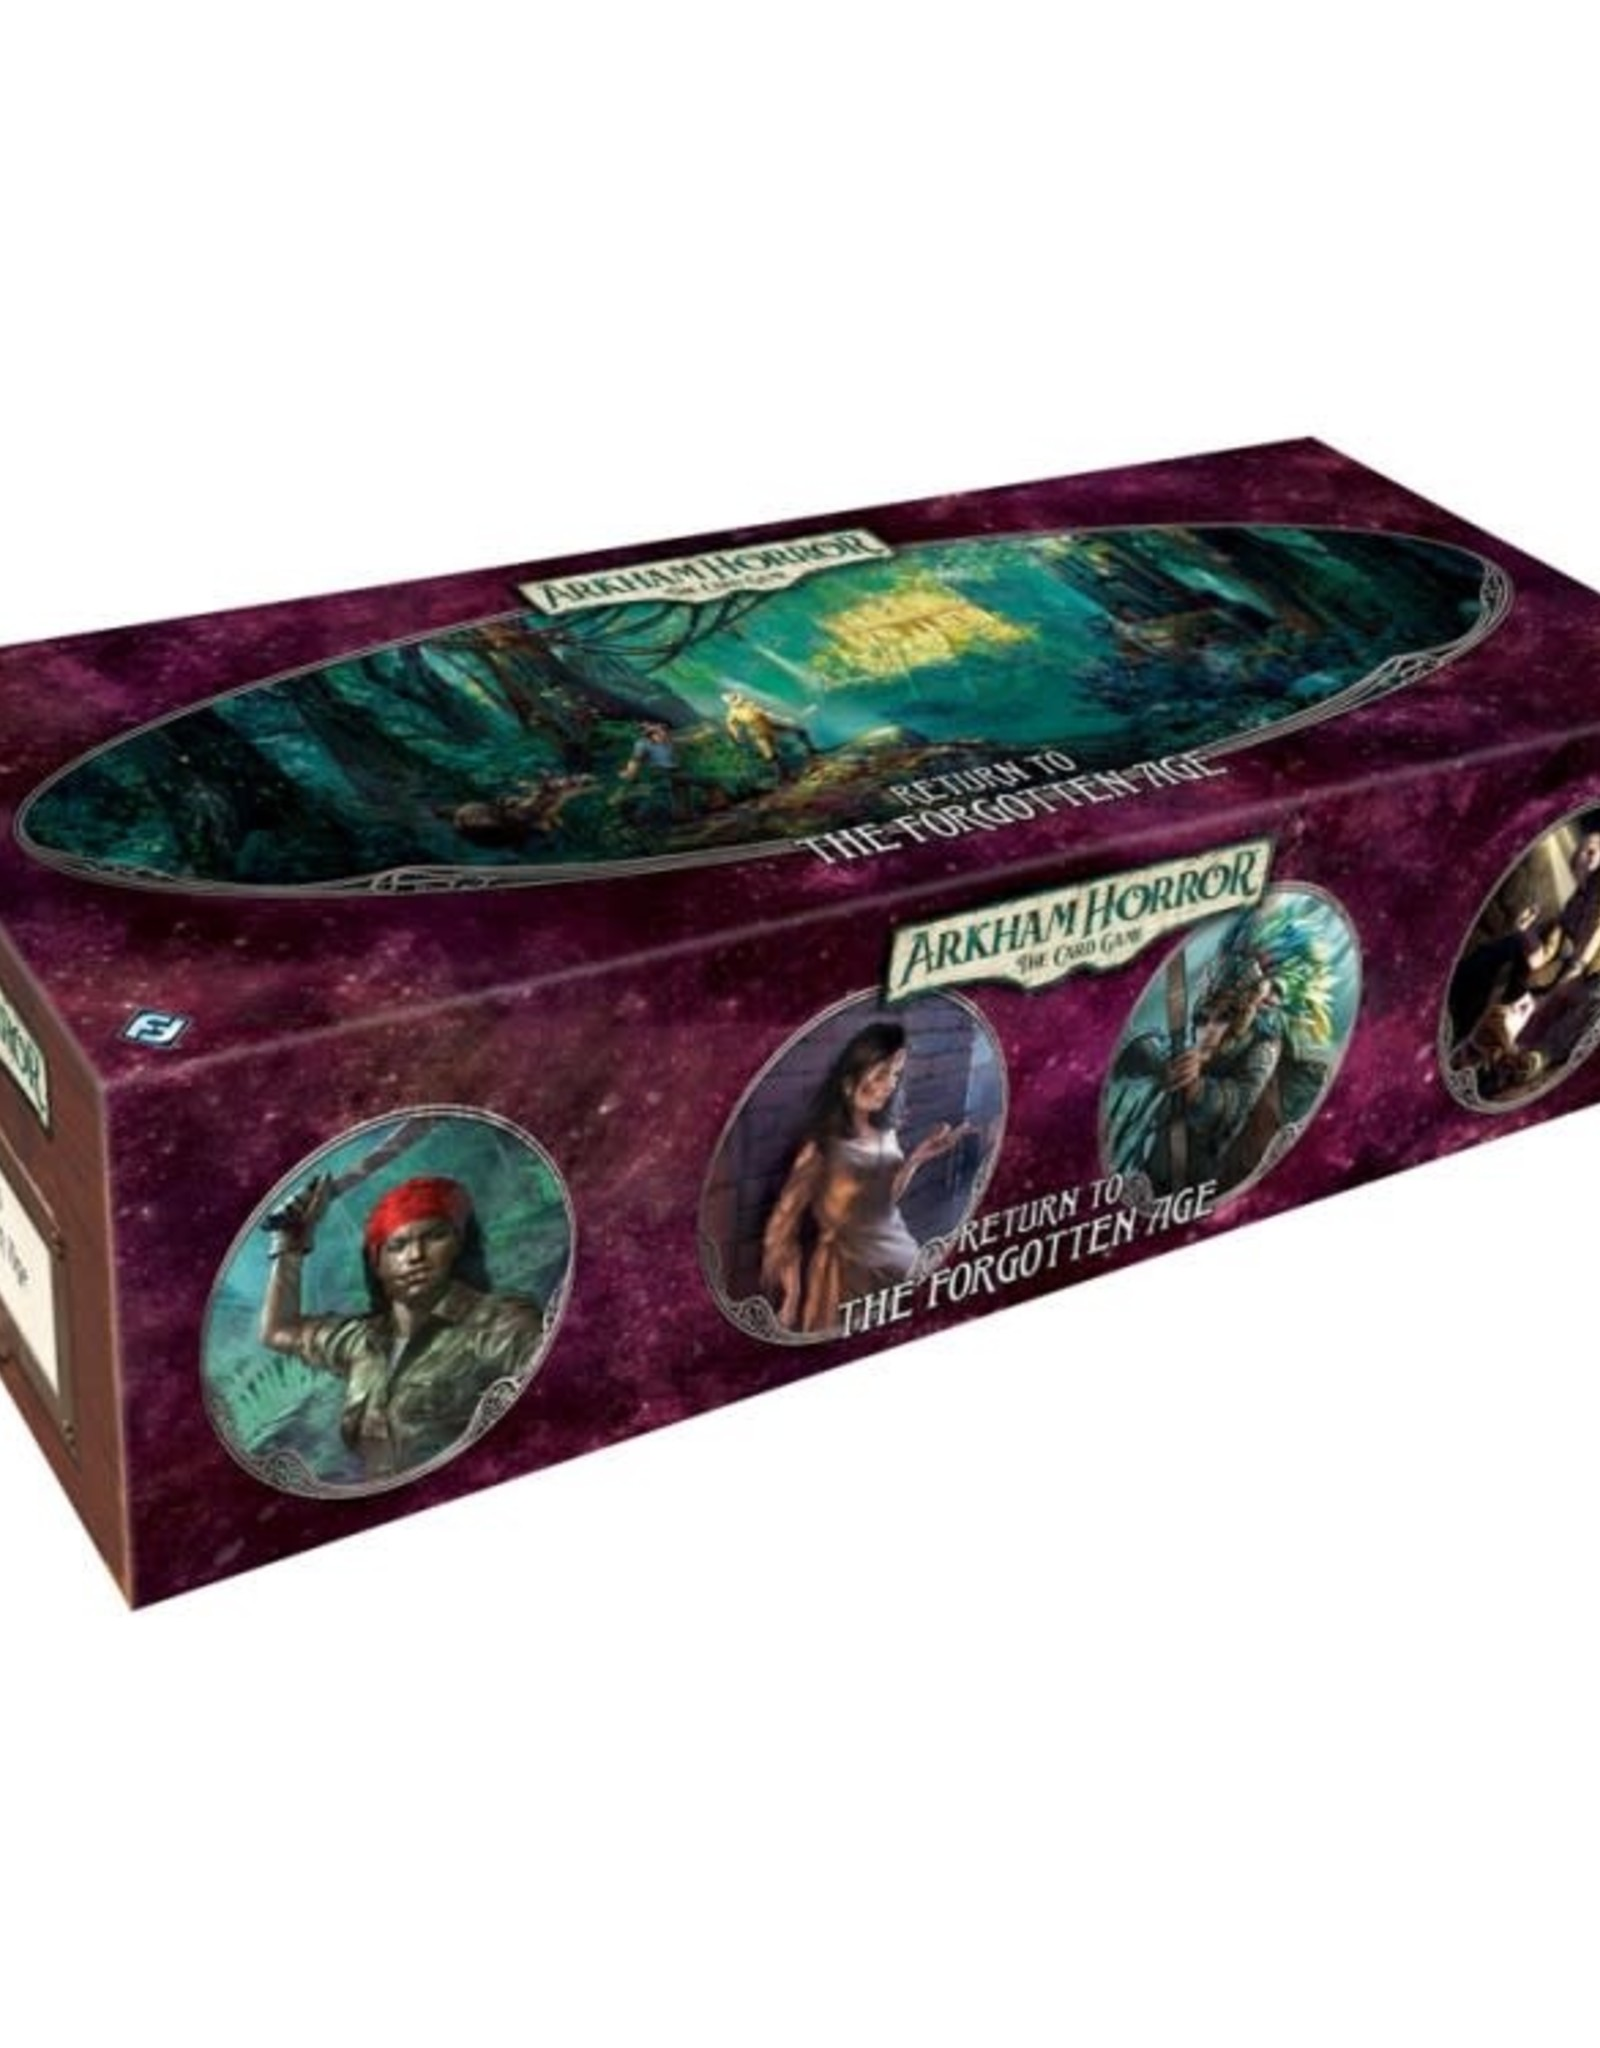 Fantasy Flight Games AH LCG: Return to the Forgotten Age